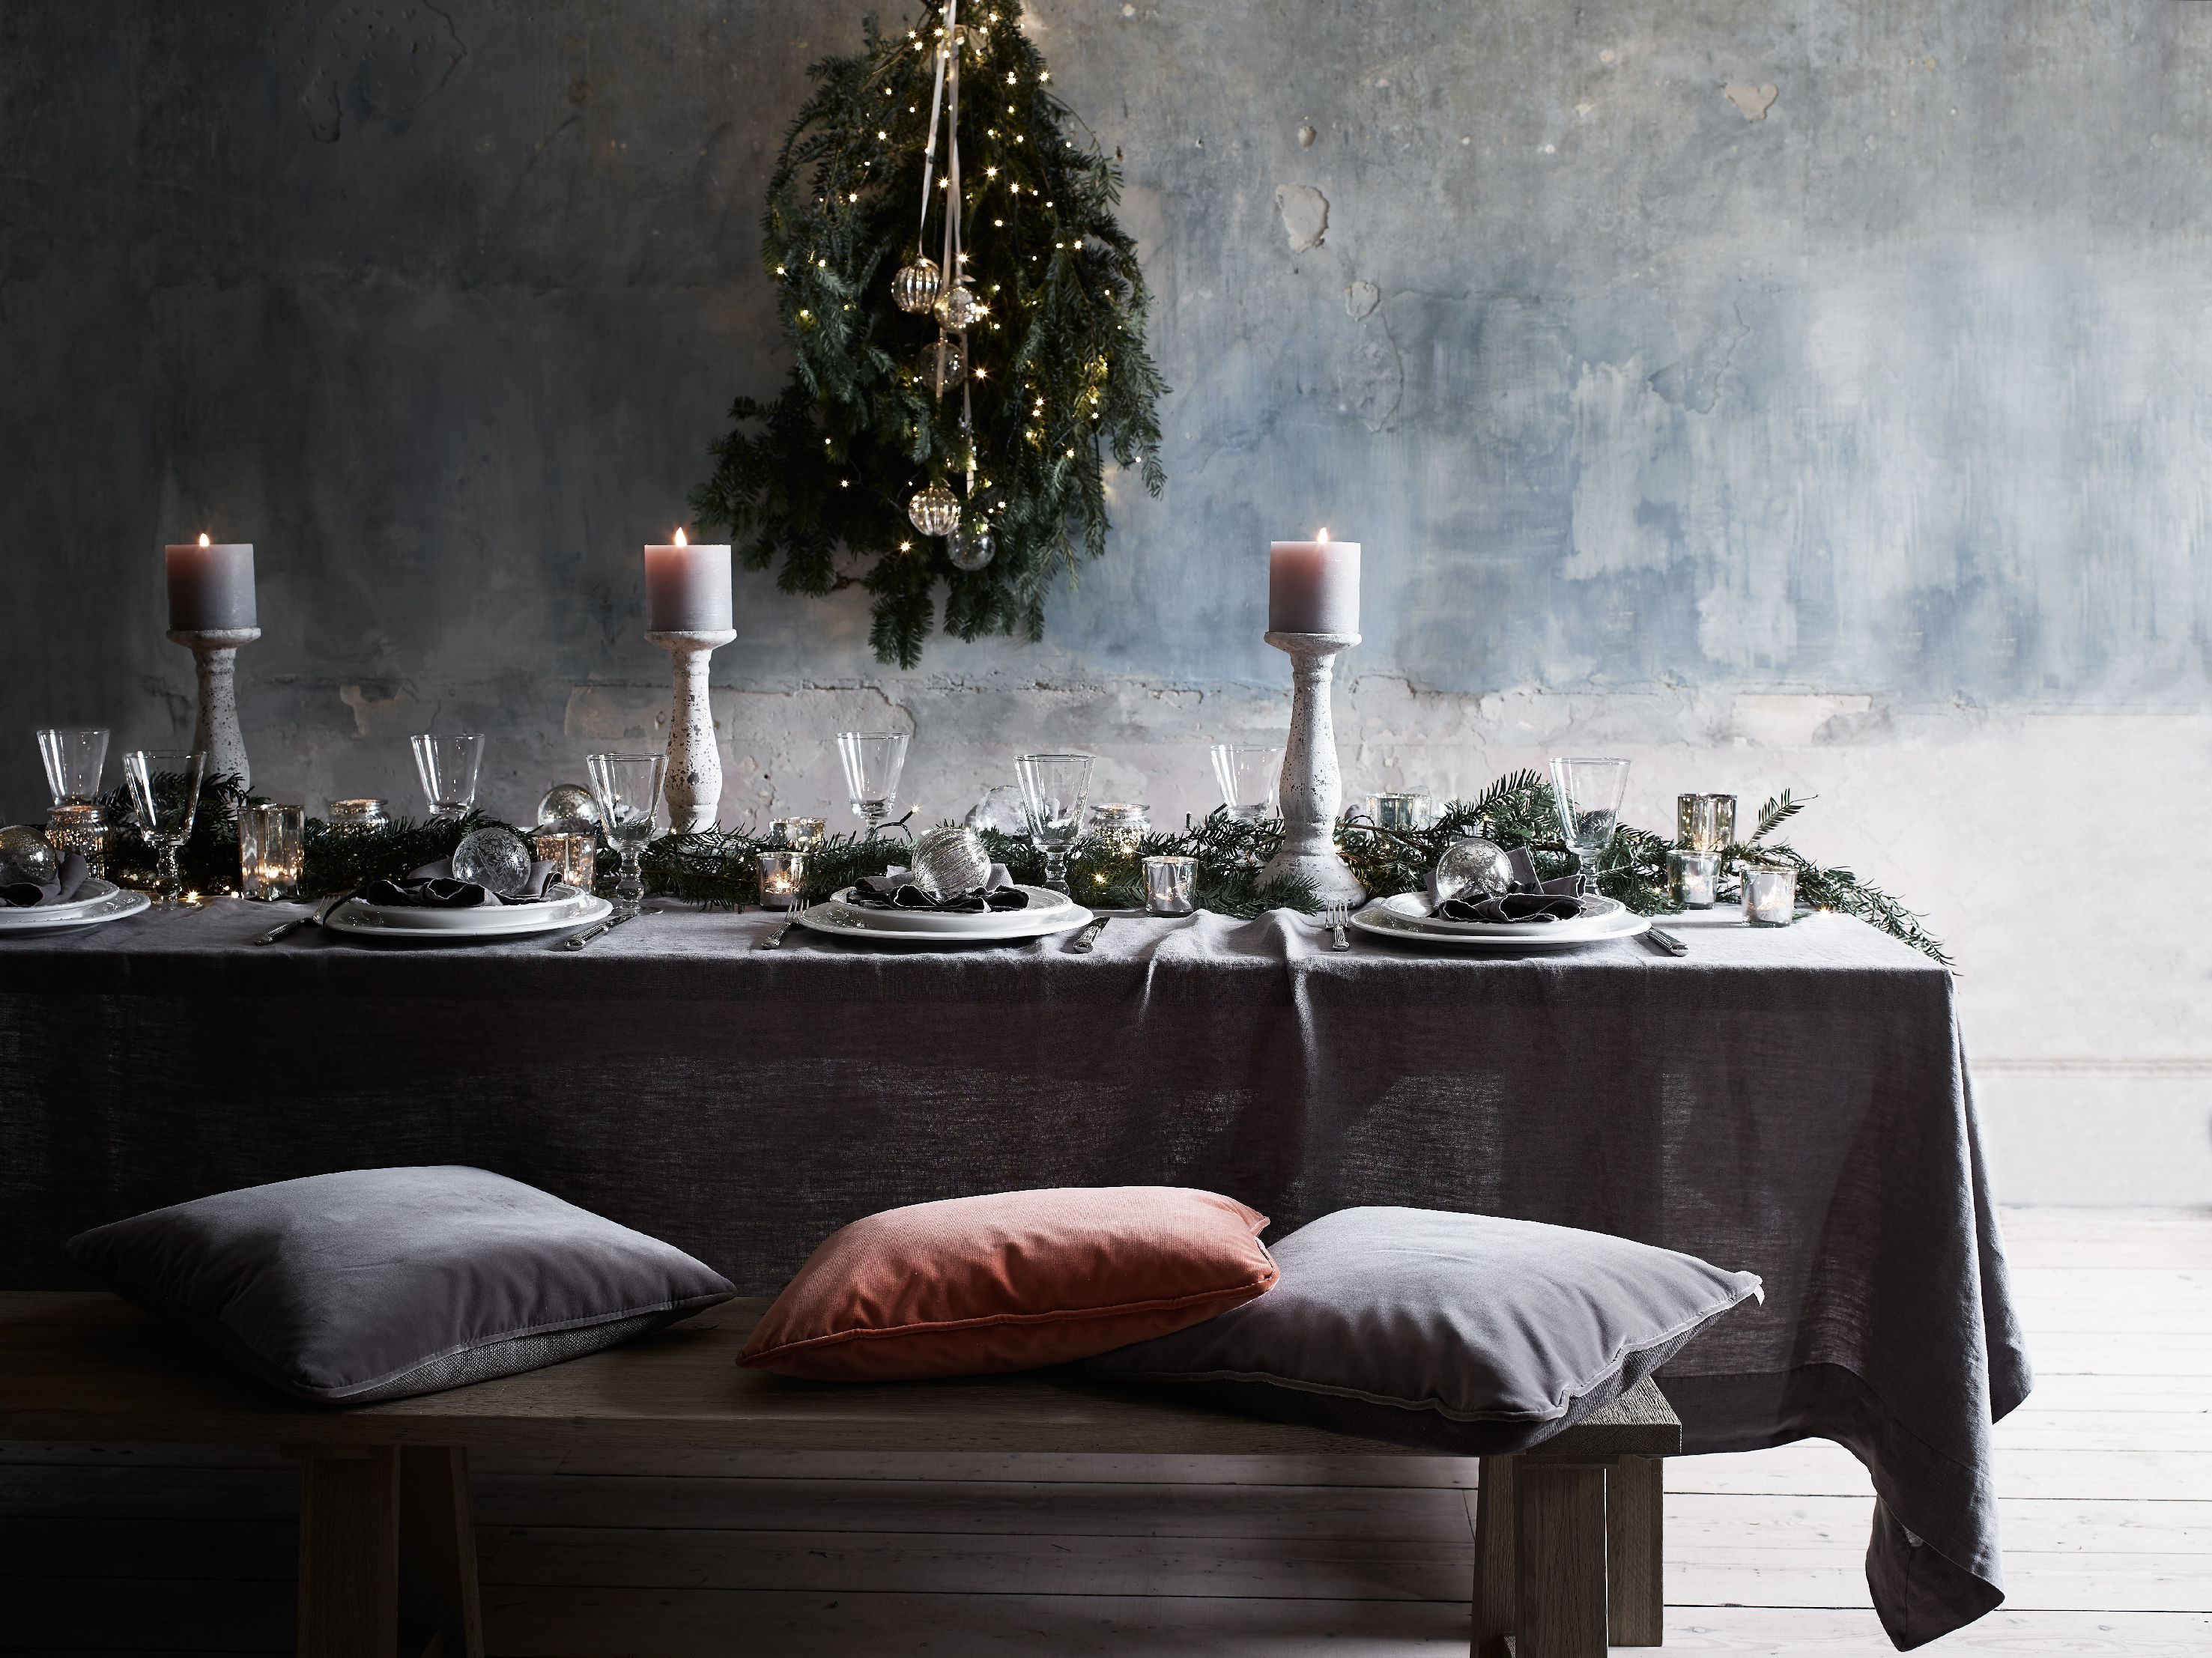 #7E574D Beautiful Ways To Decorate Your Christmas Table  5271 decoration table noel mauve 2953x2214 px @ aertt.com